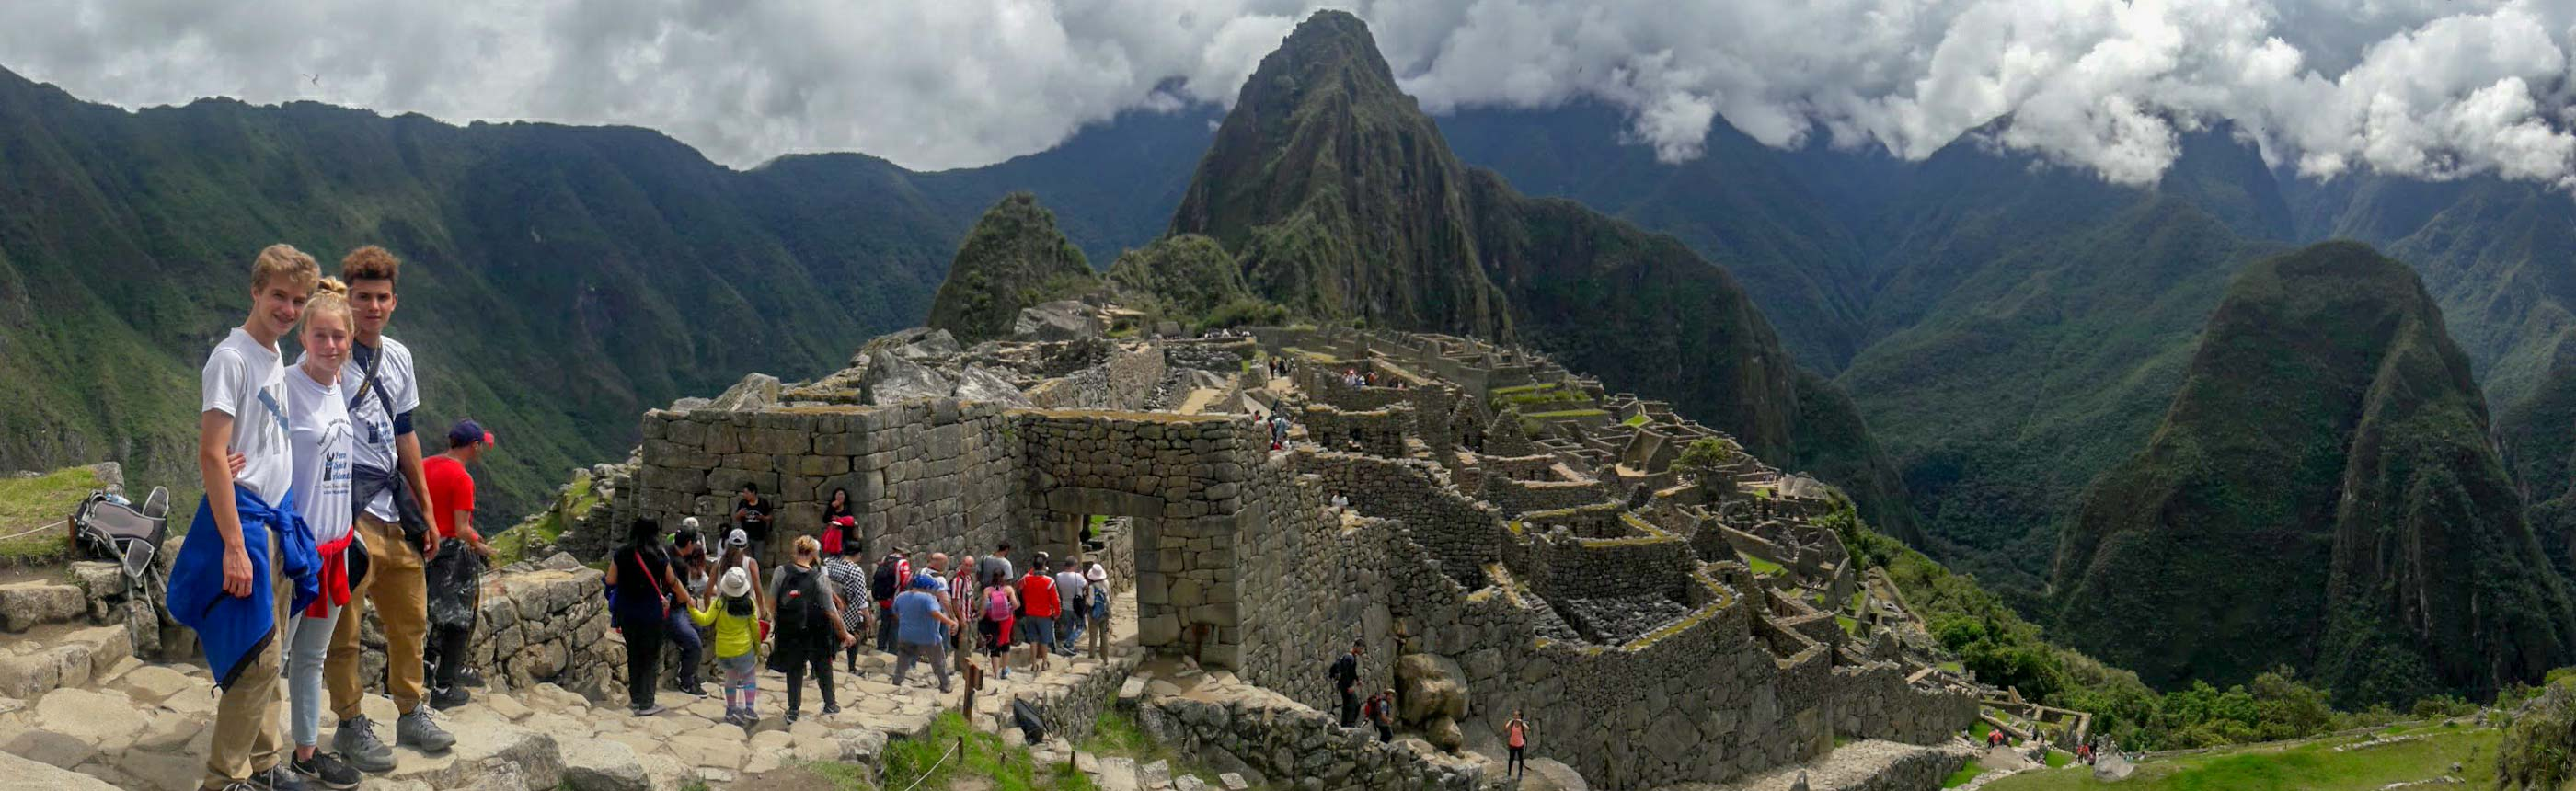 Cusco City, Sacred Valley & Machu Picchu tour is wrapped into 3 days of Inca culture, history and the most breathtaking views the region has to offer.